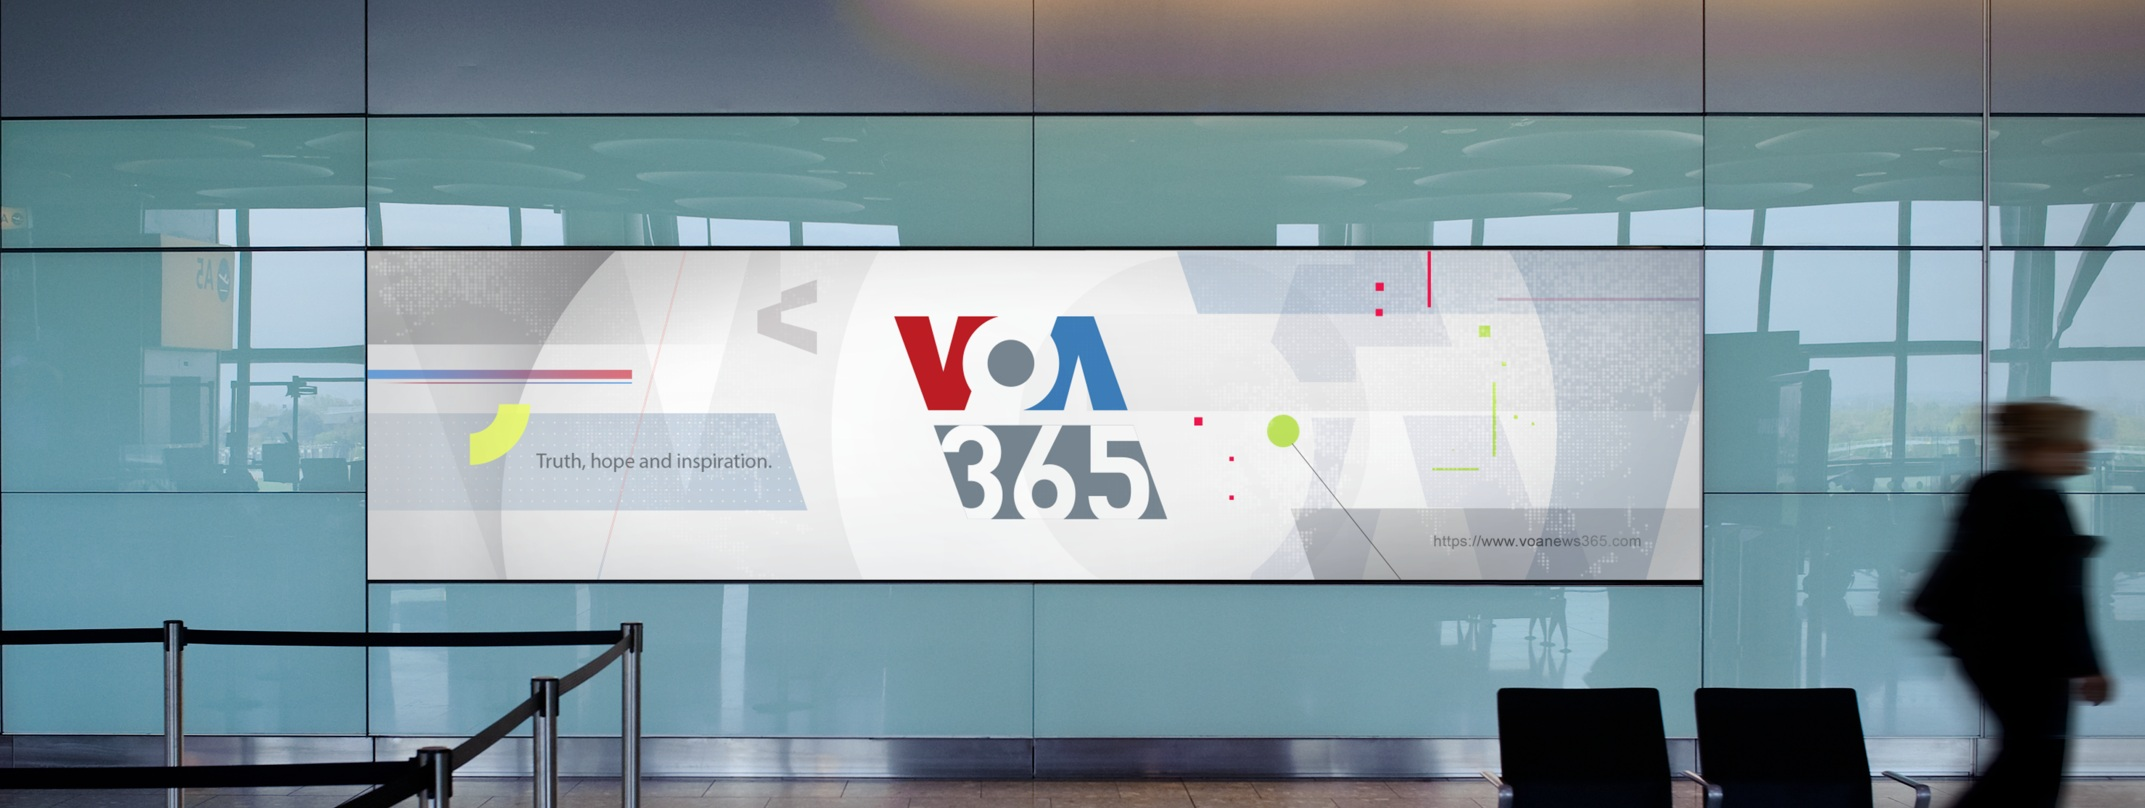 Design style frame 02 for Voice of America 365 Off-Air